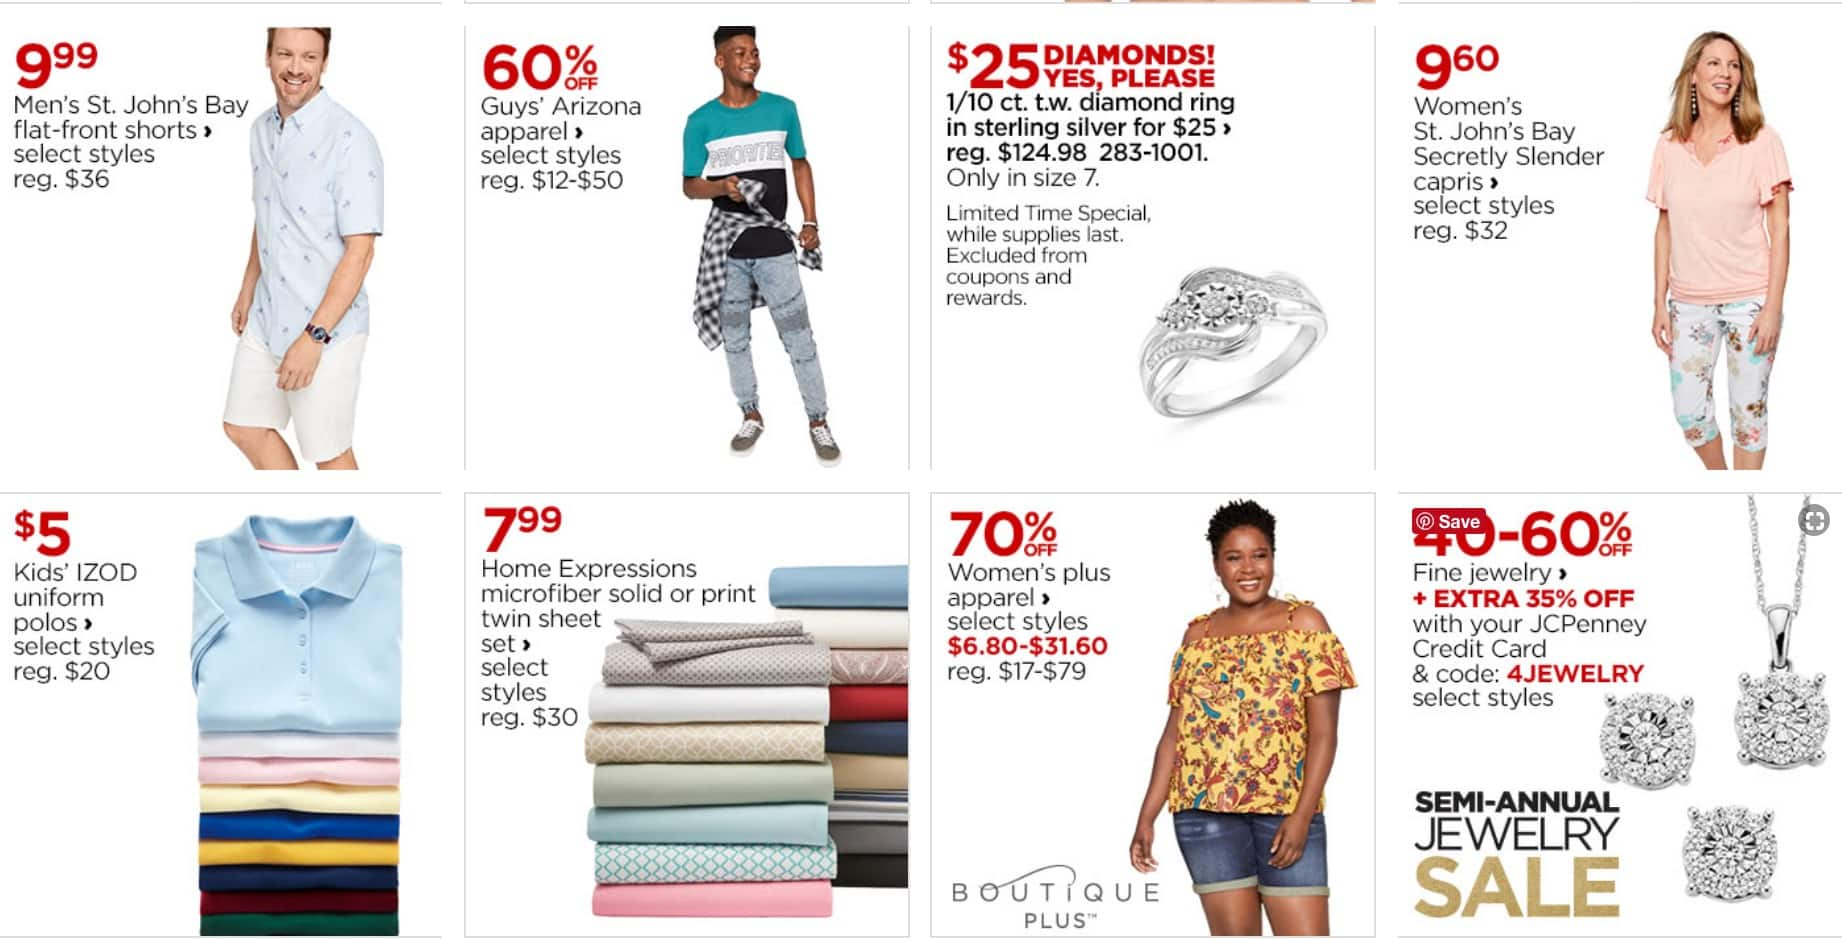 fbfb5f9b86c2 How to Score Amazing Deals at the JCPenney Black Friday in July Sale ...